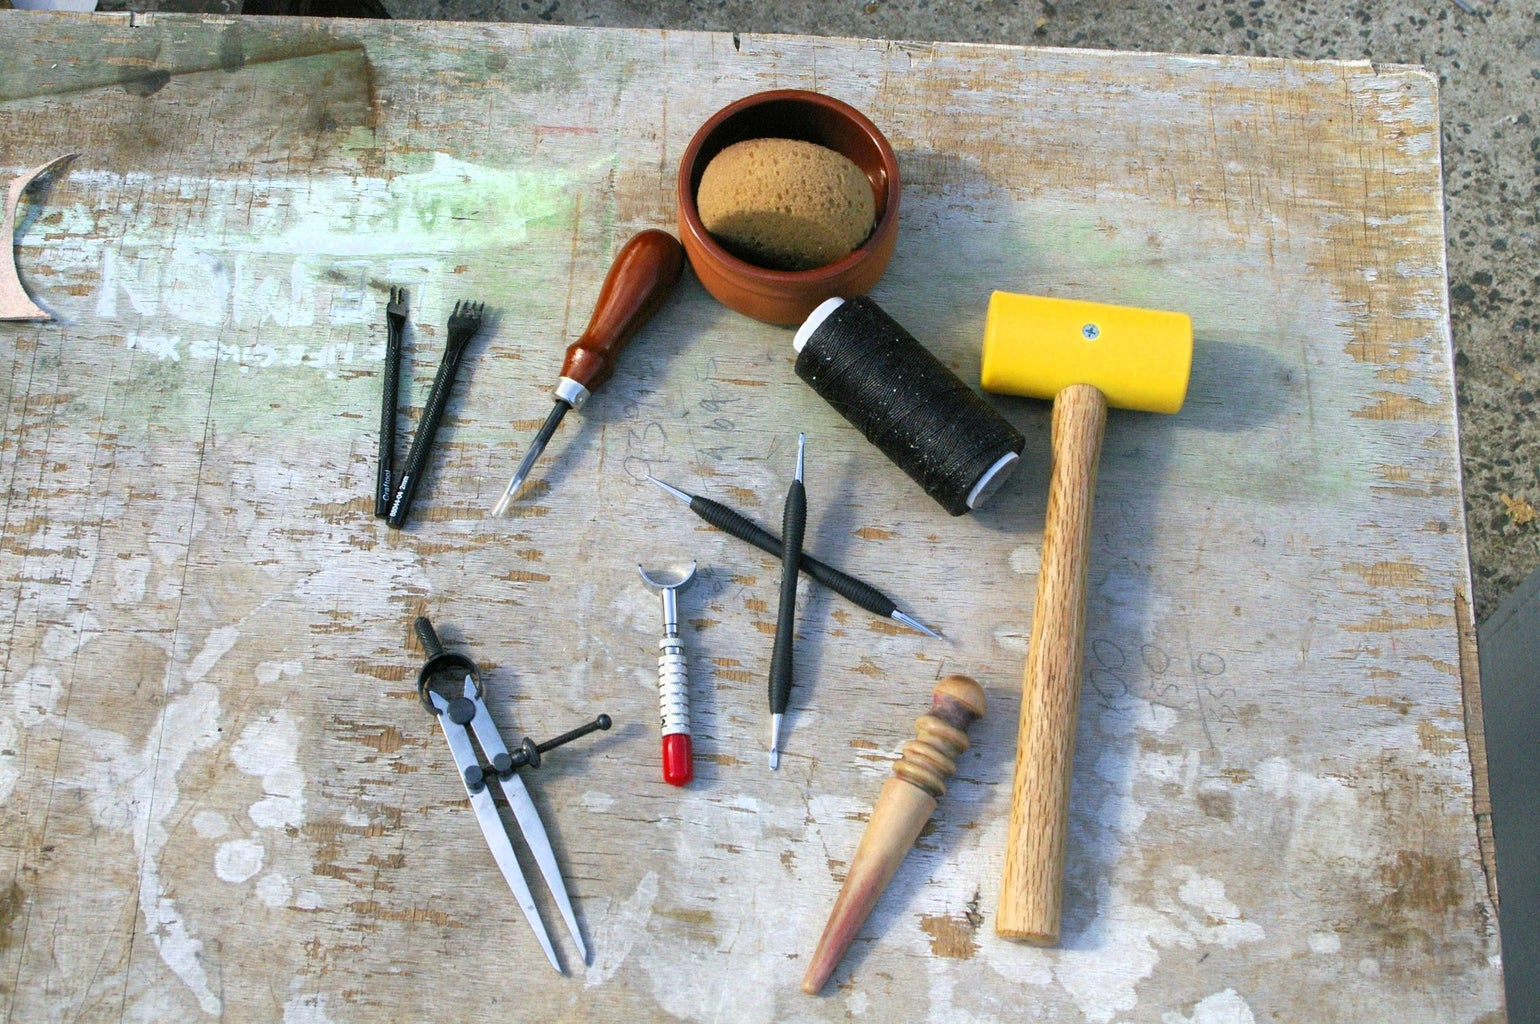 Homemade or Makeshift Tools to Make a Leather Pendant